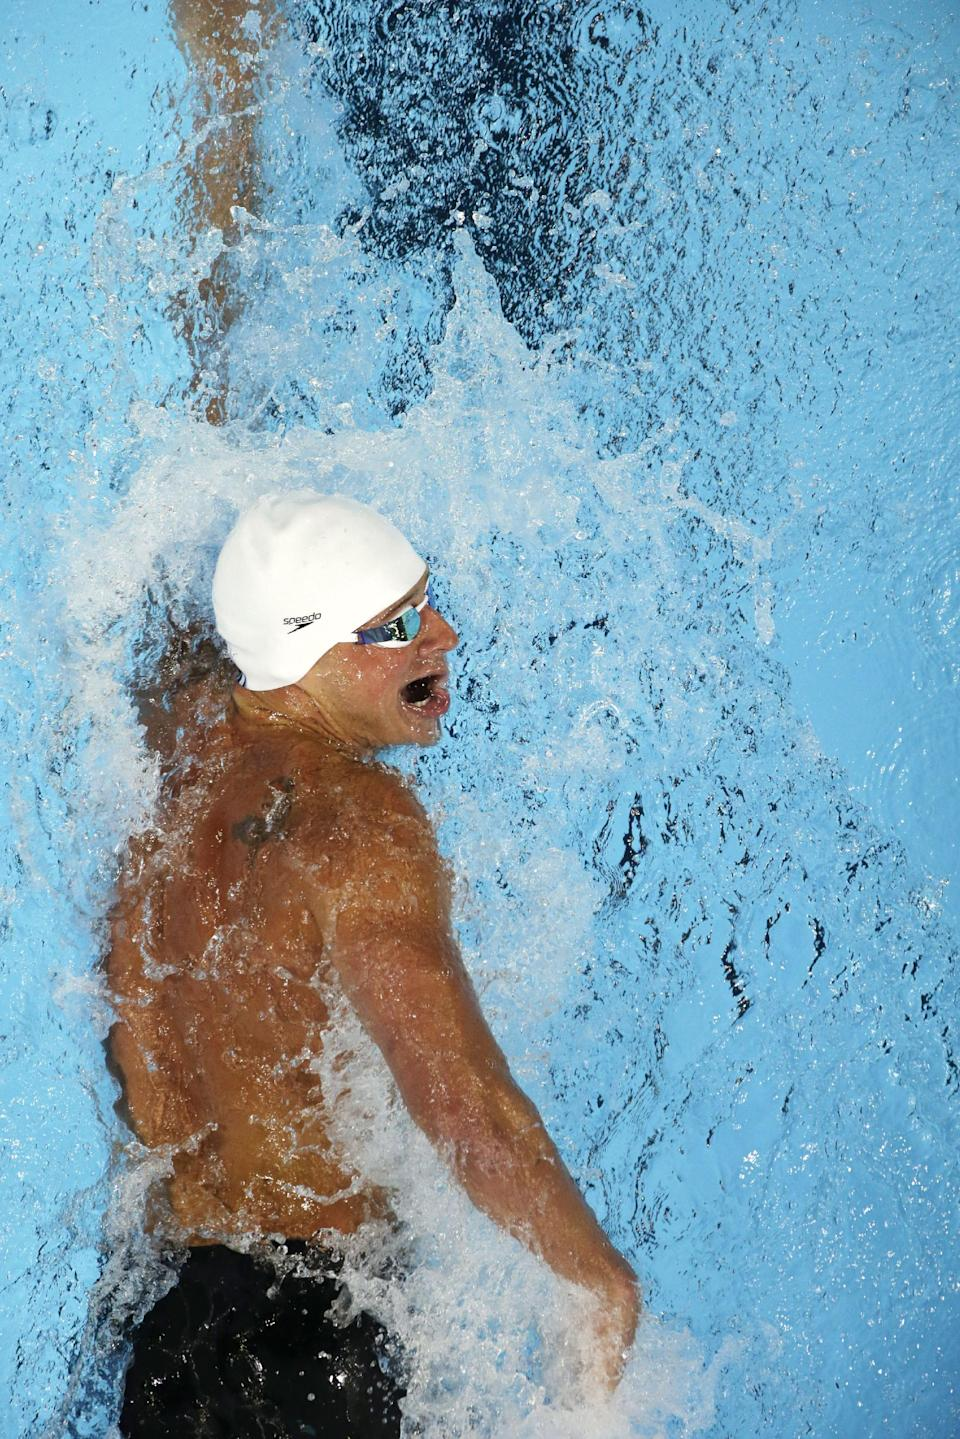 Ryan Lochte swims in the men's 200-meter freestyle preliminaries at the U.S. Olympic swimming trials, Tuesday, June 26, 2012, in Omaha, Neb. (AP Photo/Mark Humphrey)